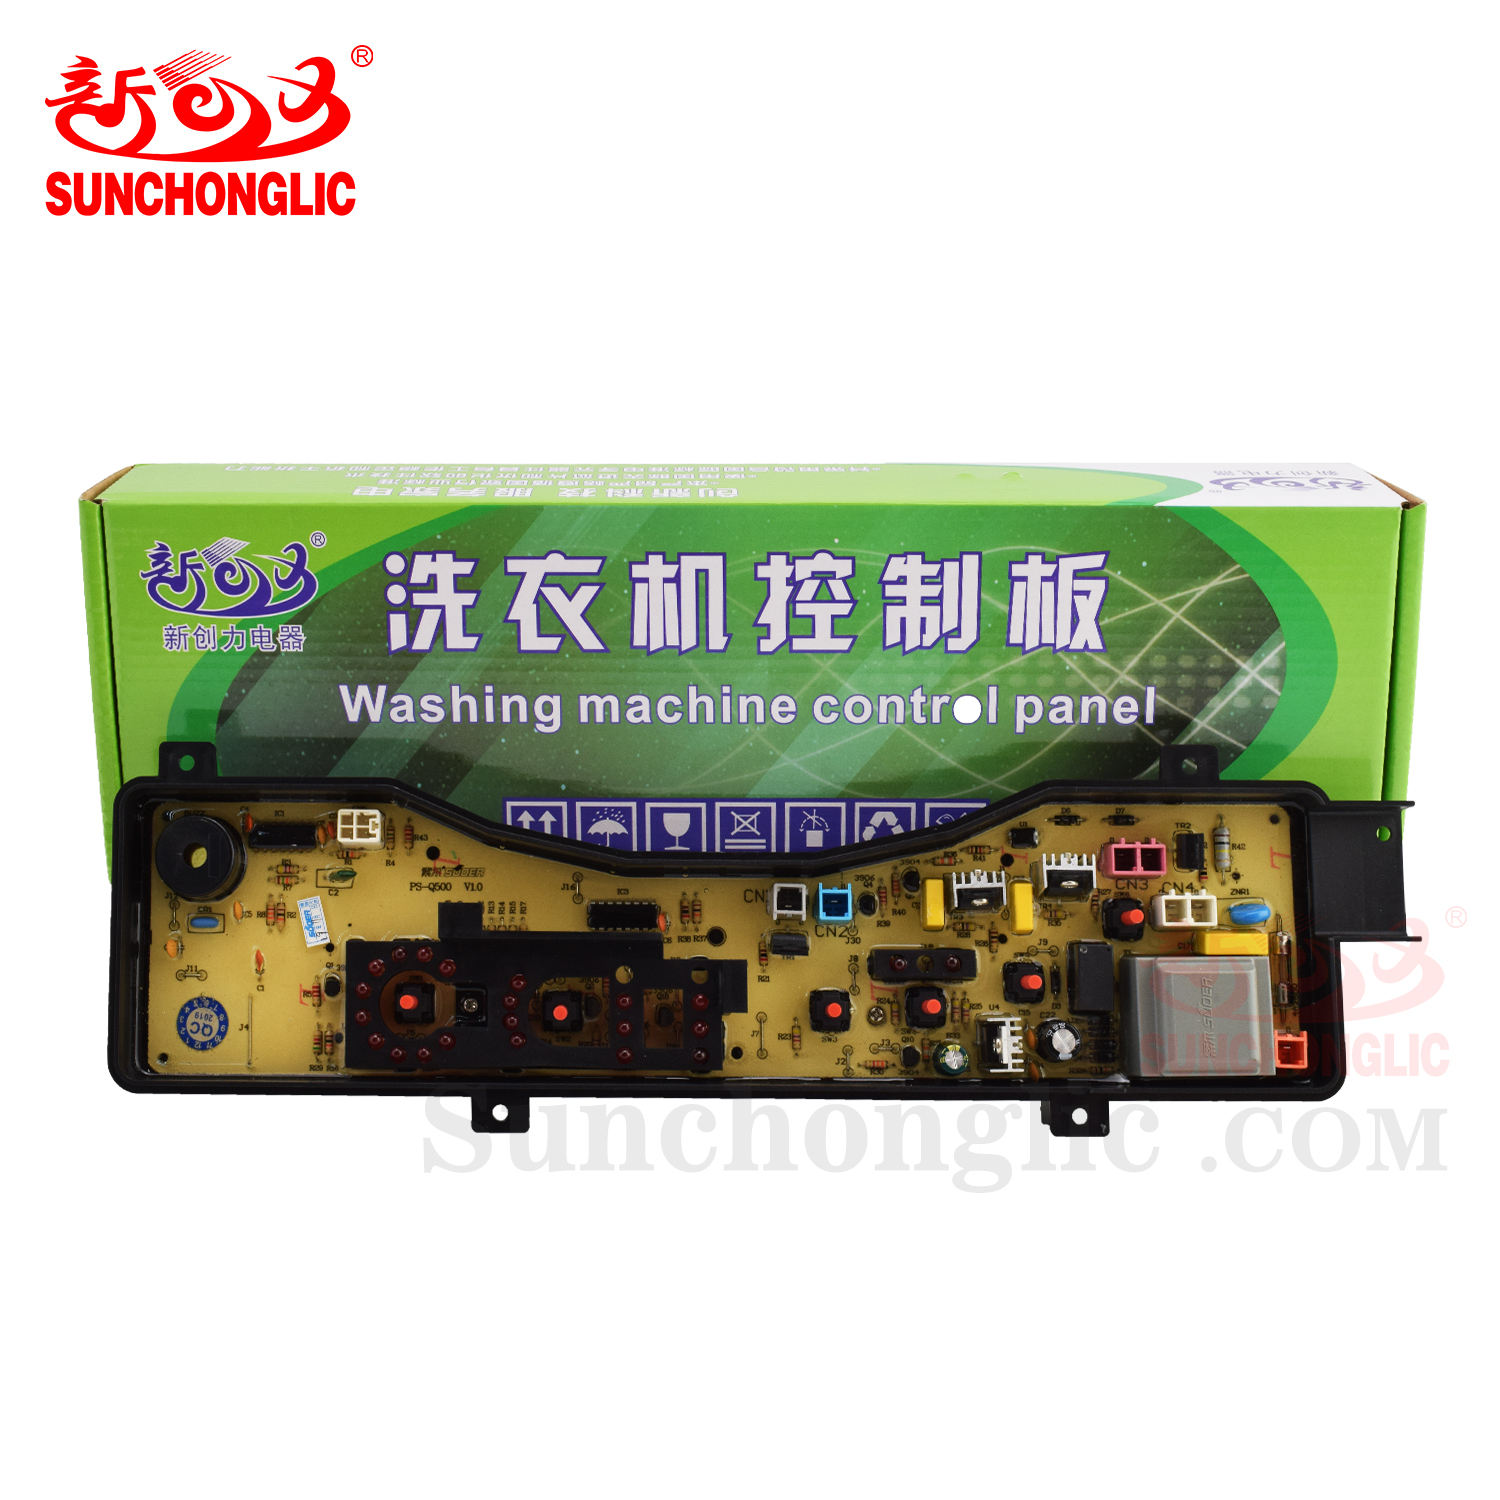 Sunchonglic washing machine parts washing machine control pcb board